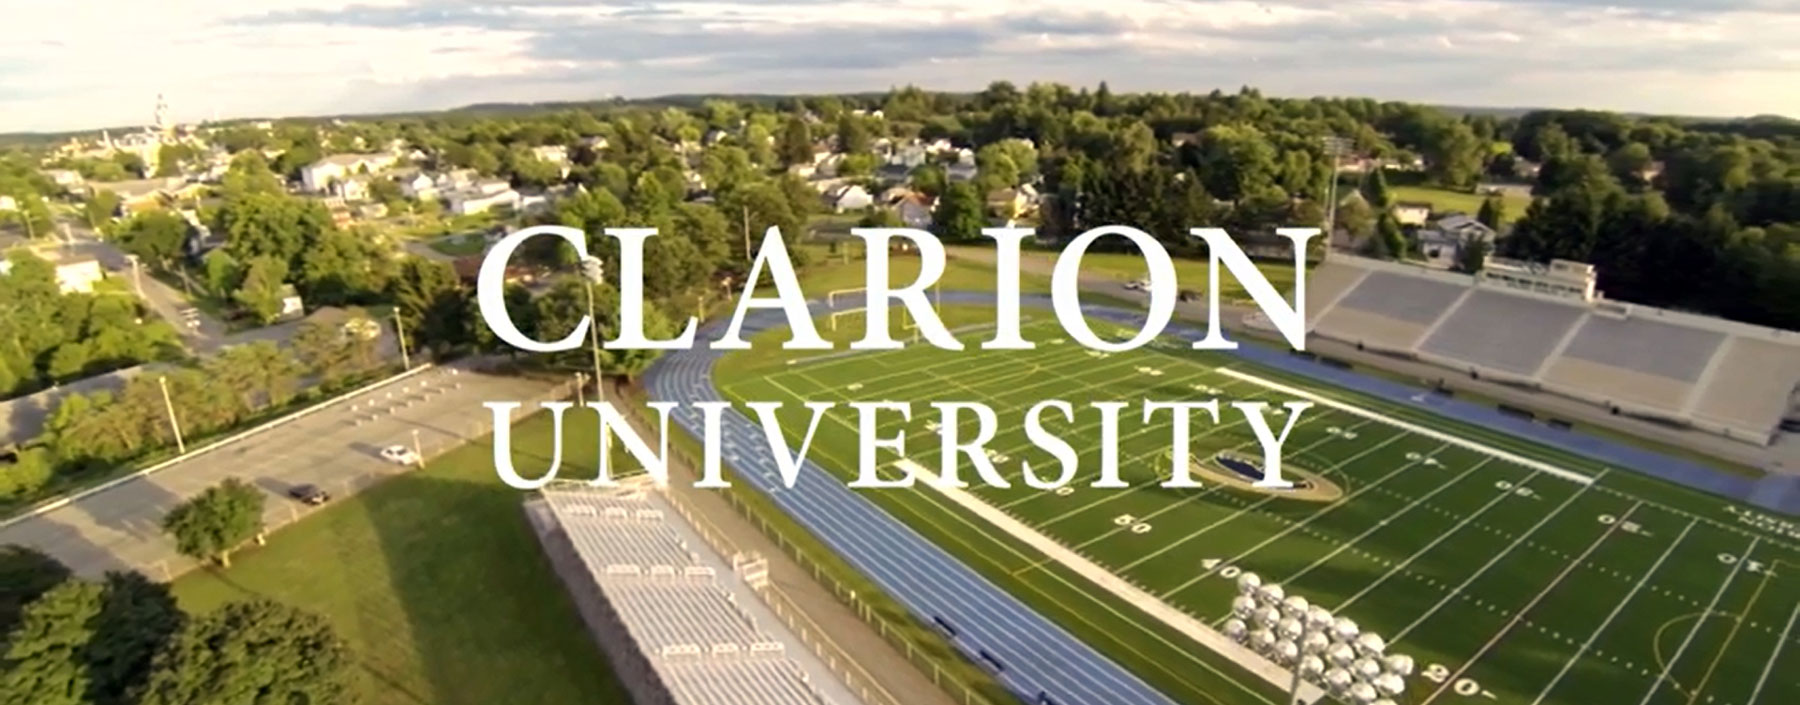 10 Easiest Courses at Clarion